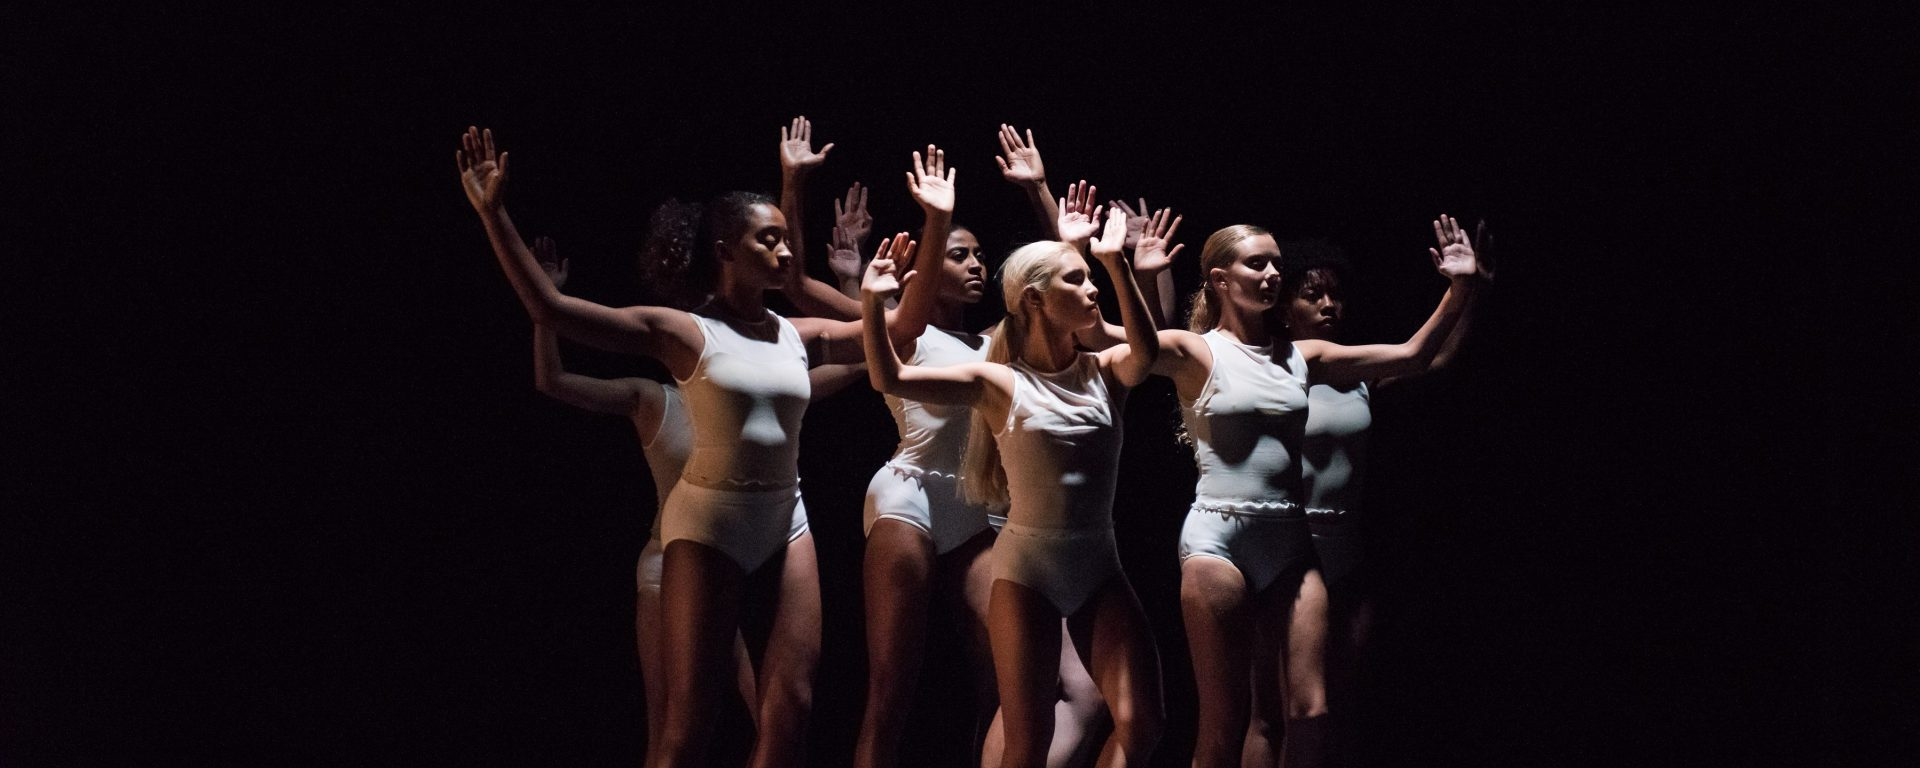 A group of women dancers performs, clustered together with arms in the air, with simple, white costumes and black background.